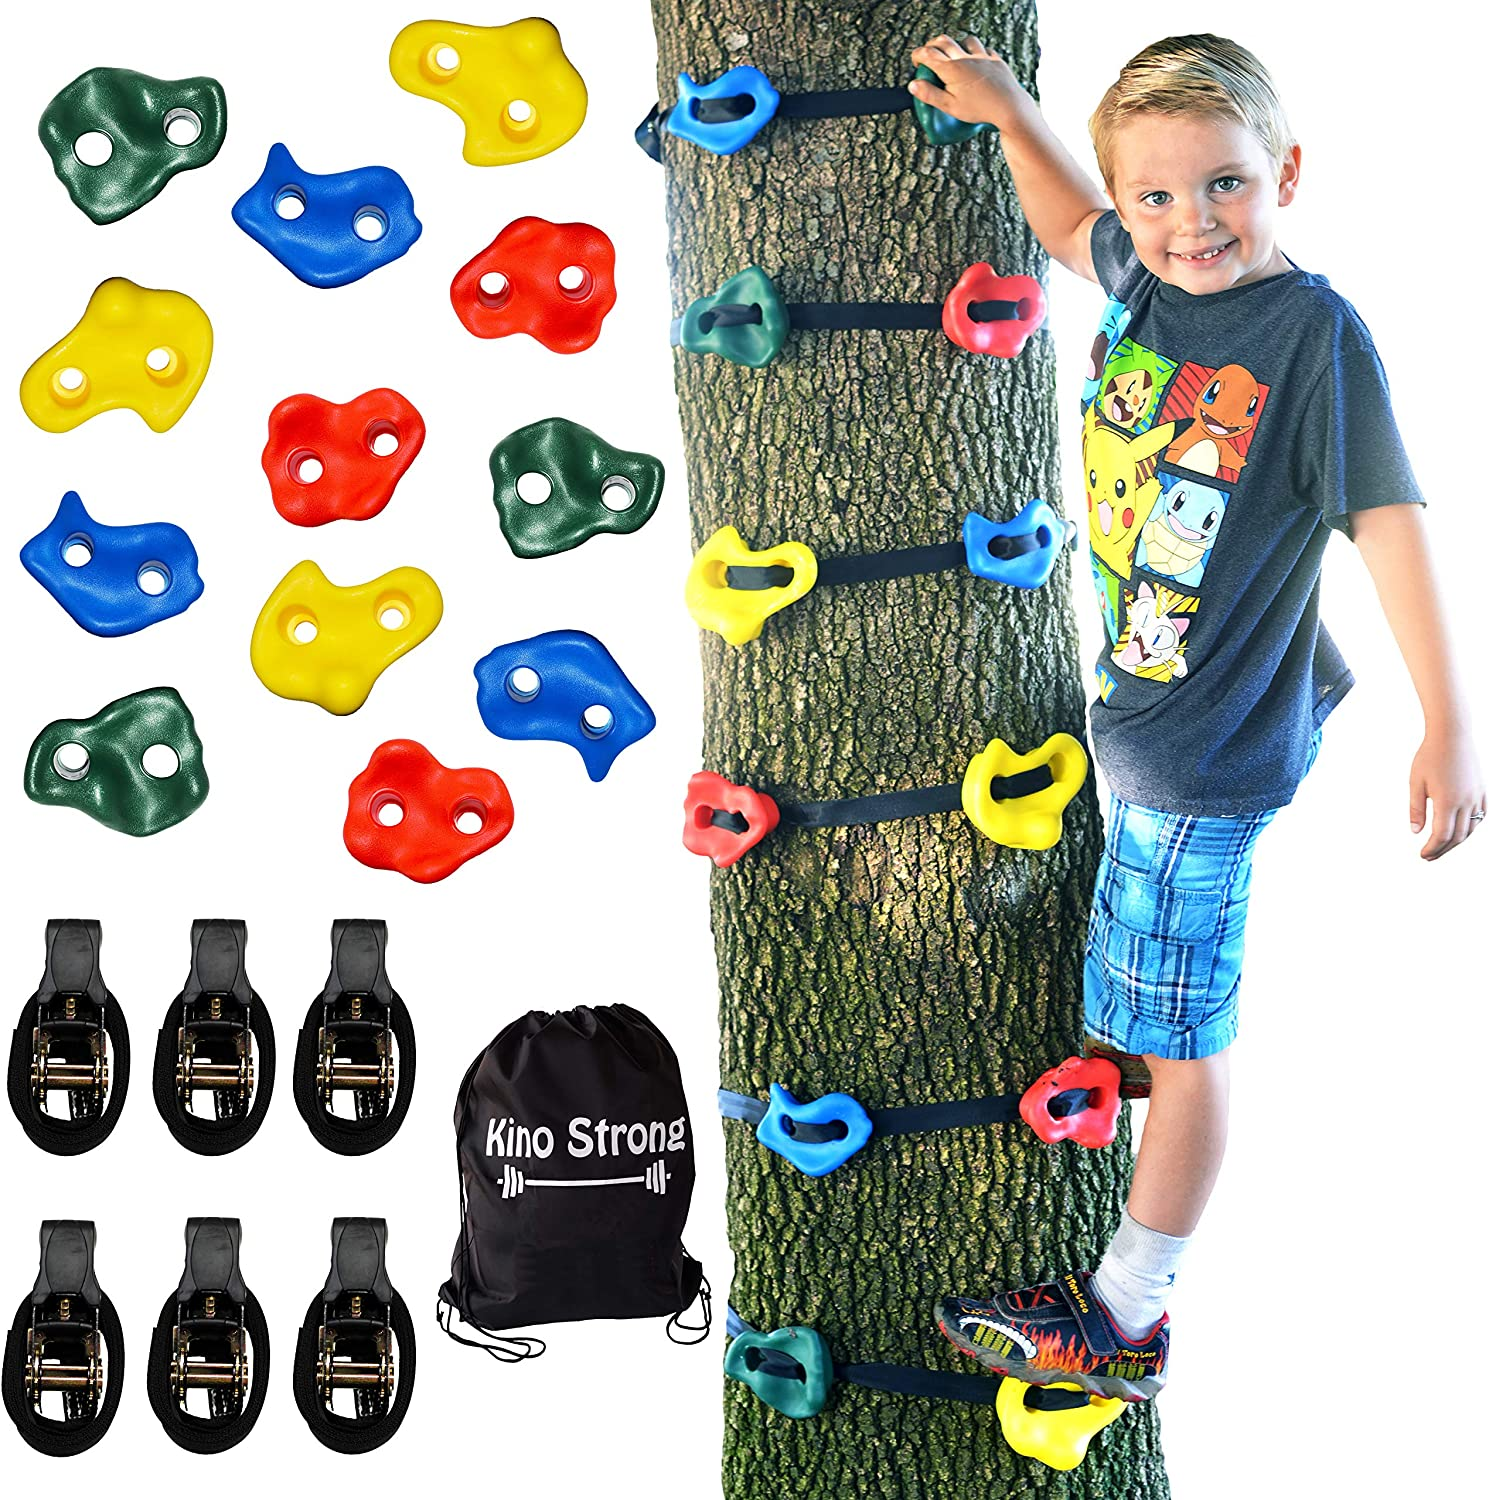 DreamsBe Tree Climbers 12 Backyard Ninja Tree Climber Holds & 6 Slackline Ratchet Straps for Kids Adult Climbing Holds Outdoor Ninja Warrior Obstacle Course Training Equipment (6.5 Foot Tree Straps)